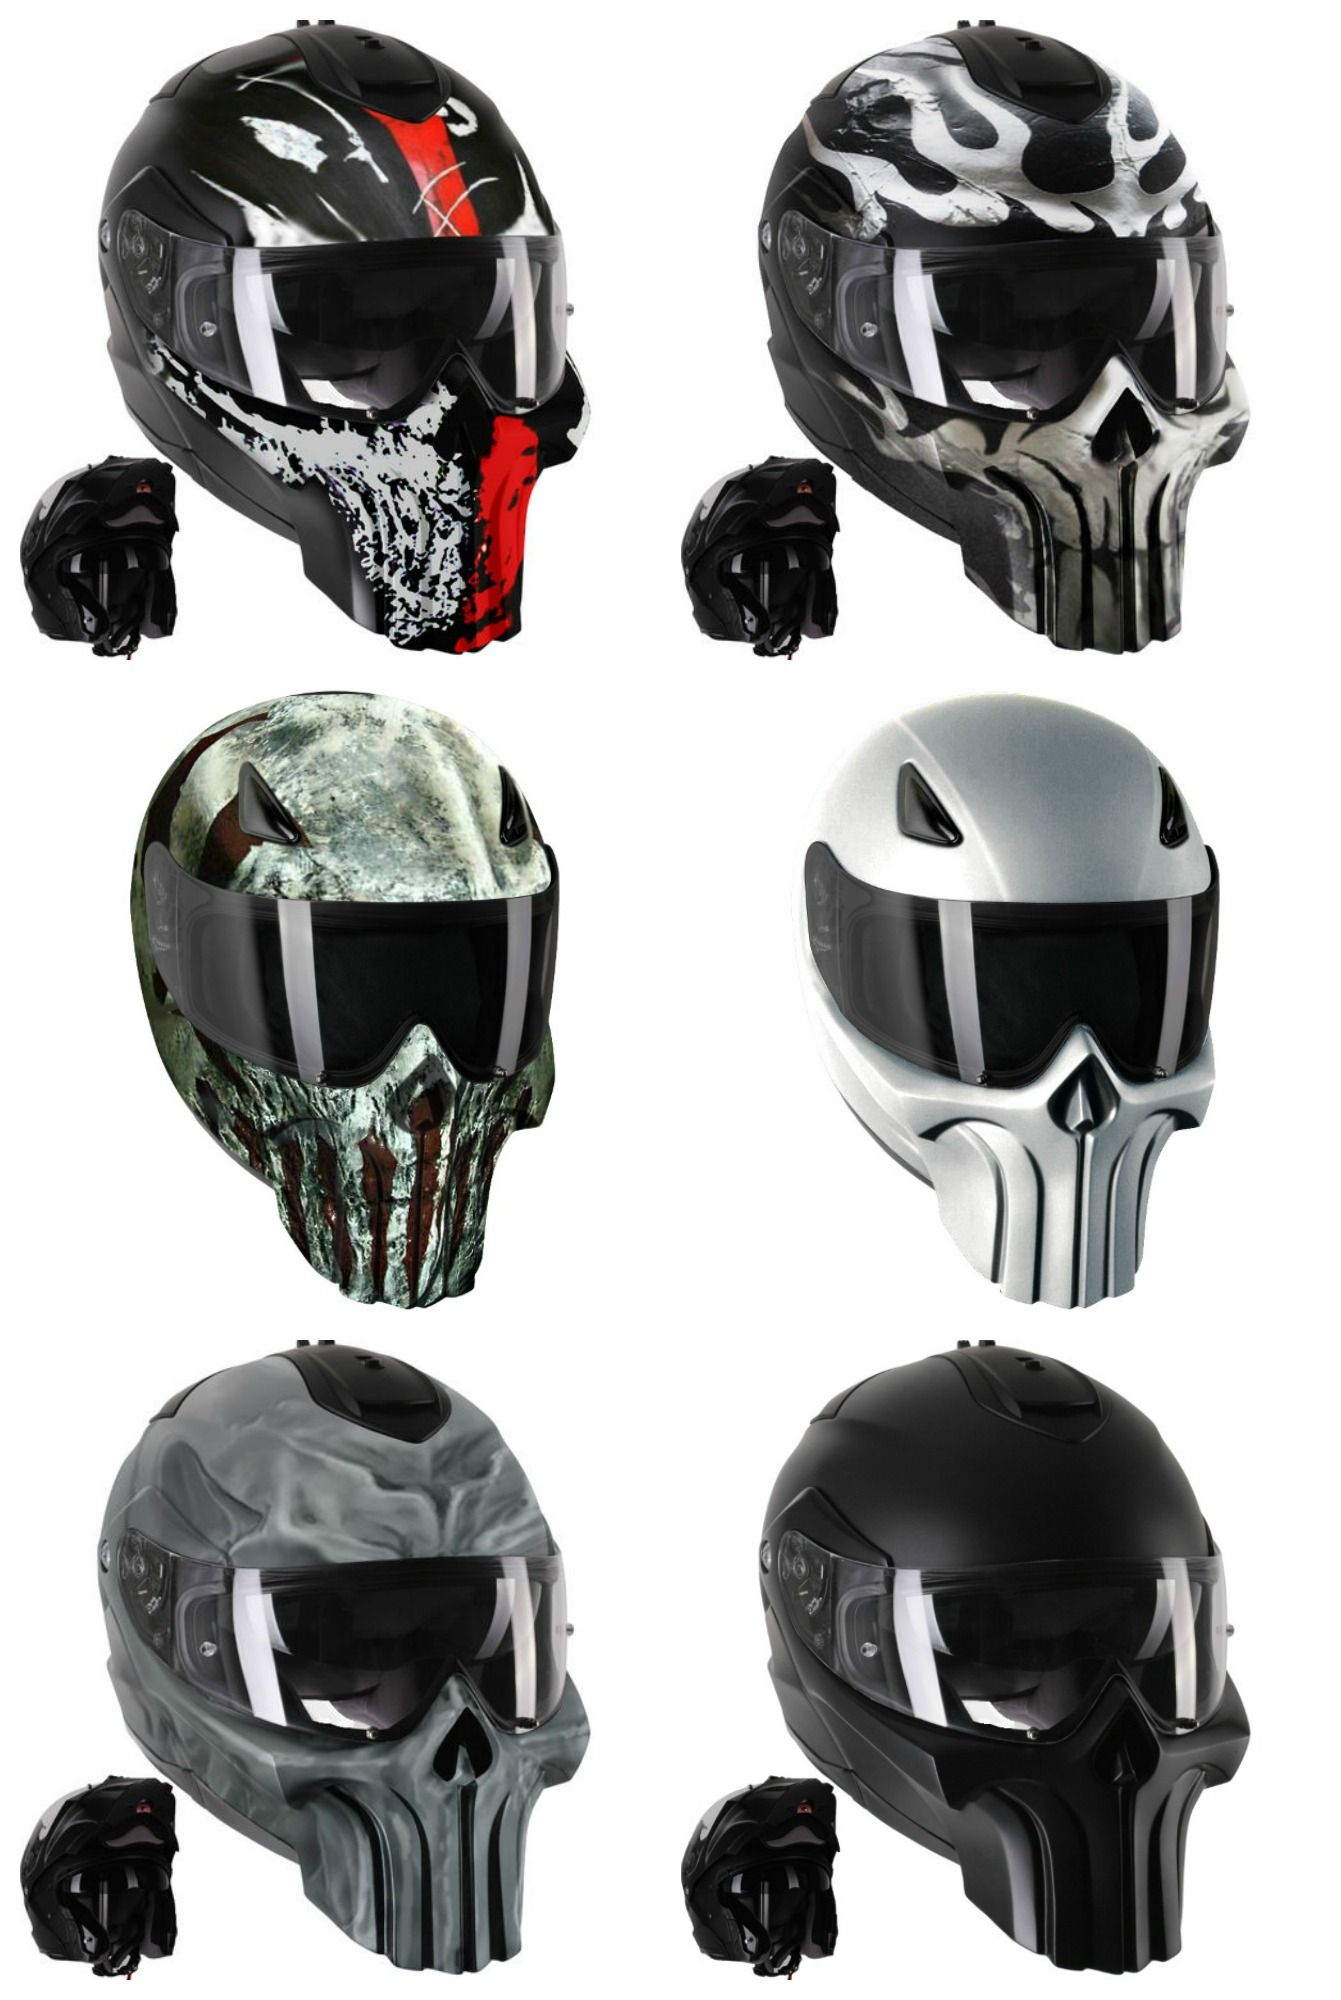 Kids Costumes & Accessories Back To Search Resultsnovelty & Special Use Trend Mark Wwii Vintage Motorcycle Goggles Racing Glasses Helmet Light Eyewear Pilot Retro Motocross Daft Punk Helmet Steampunk Accessories